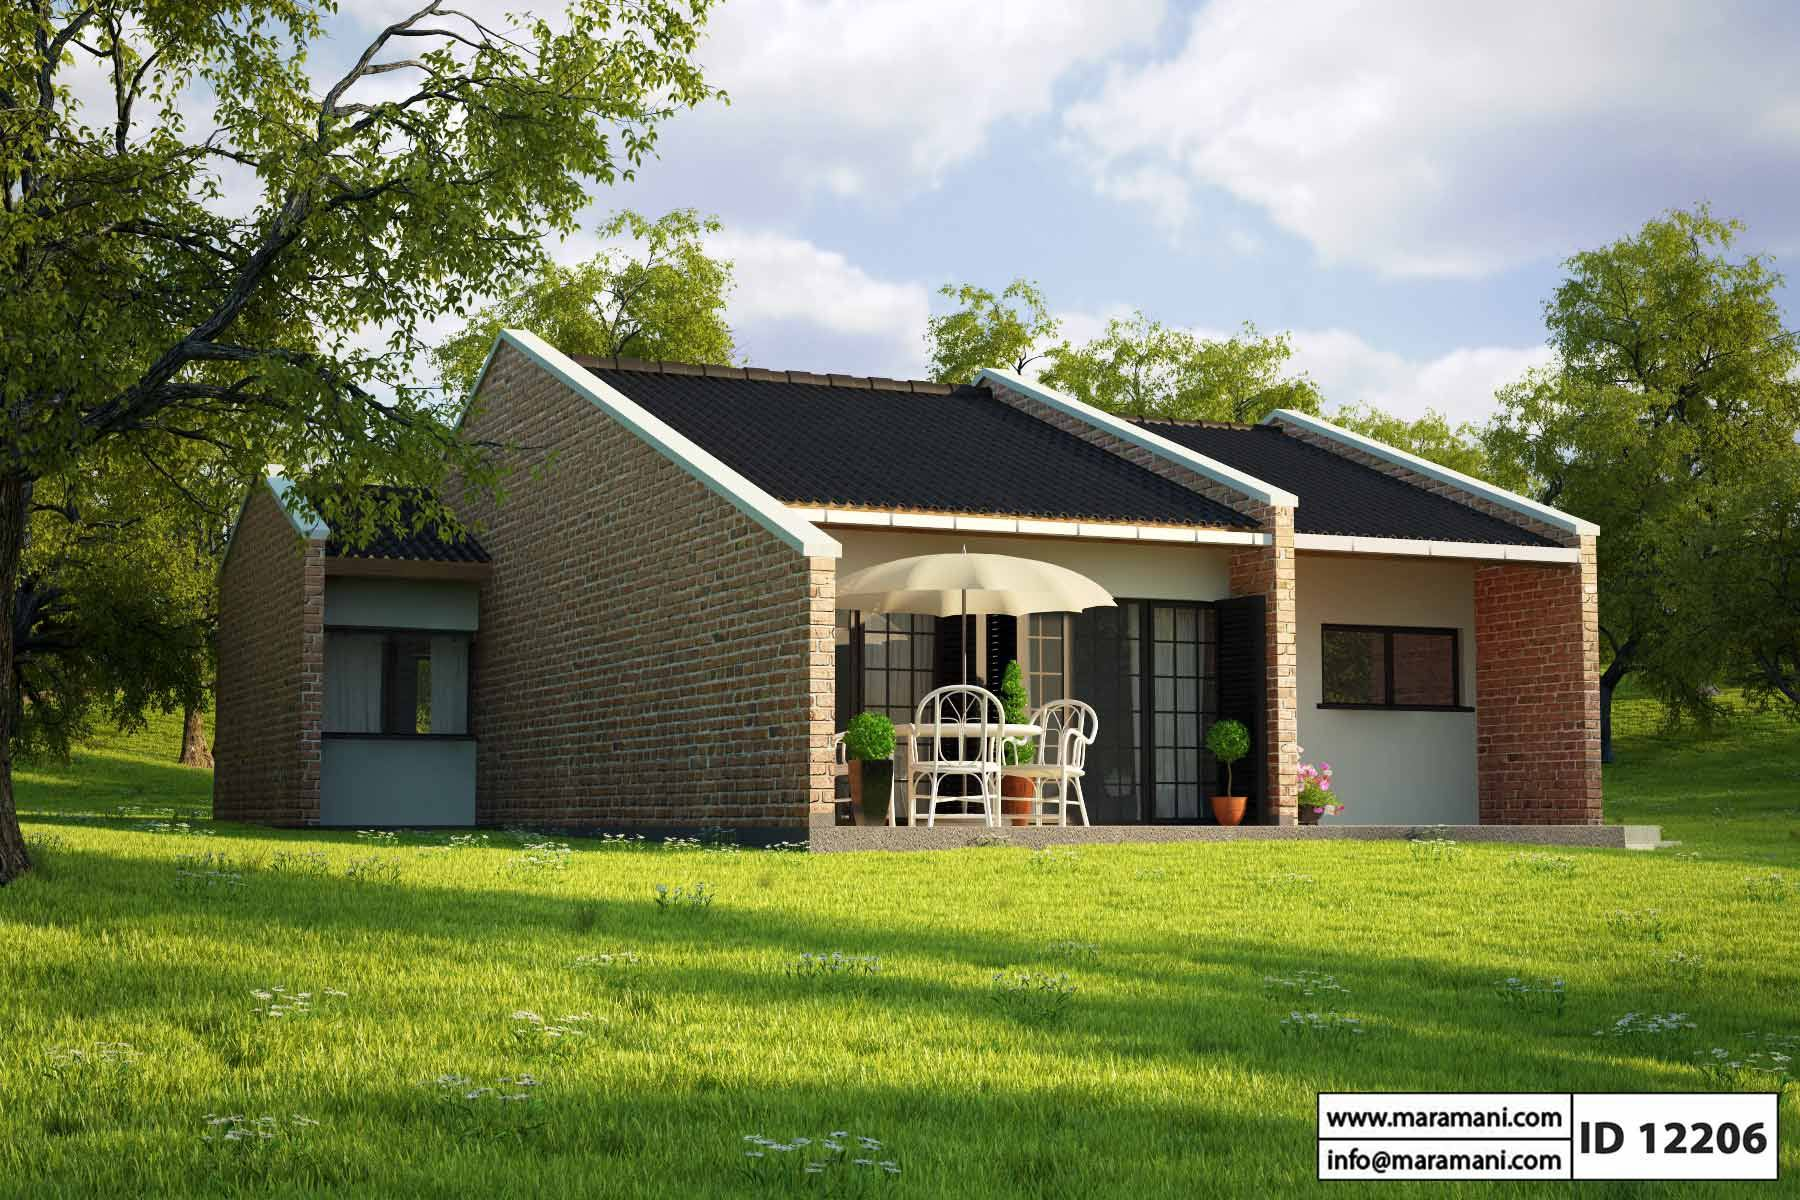 Small Brick House Design - ID 12206 - House Plans by Maramani